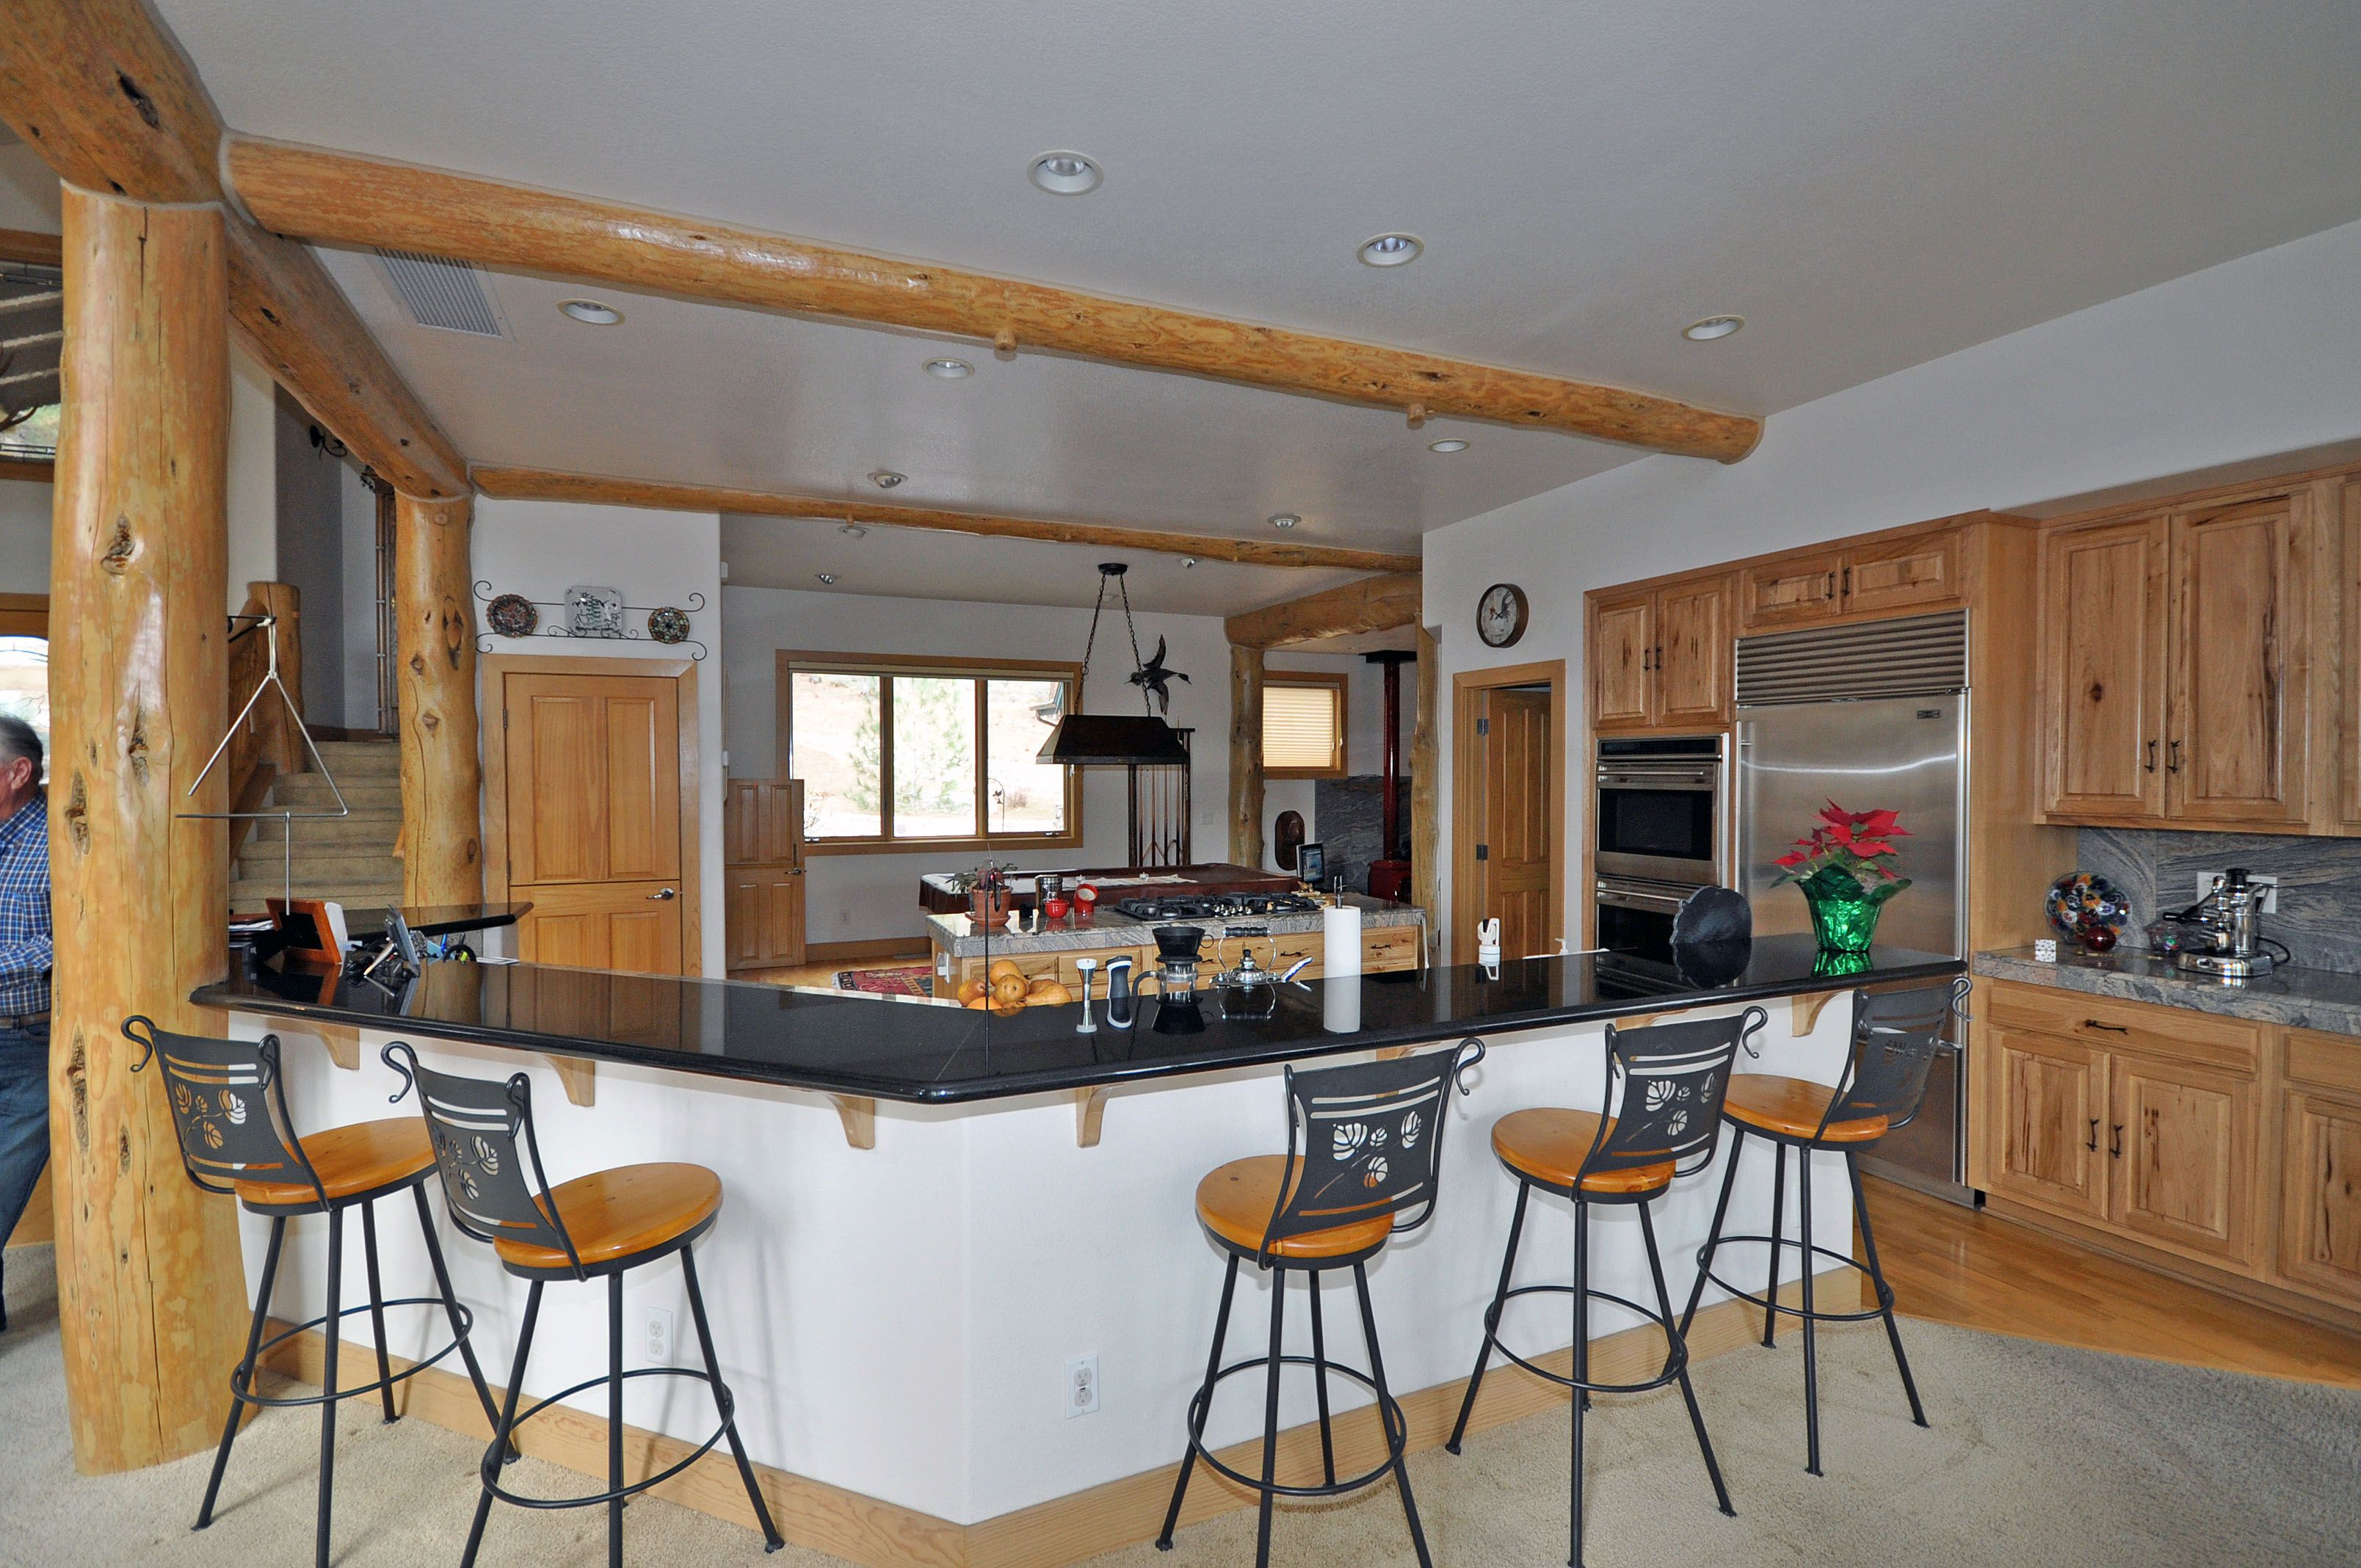 Appealing White Kitchen Island with Stools and Dark Countertop Used in Rustic Kitchen using Log Pillars